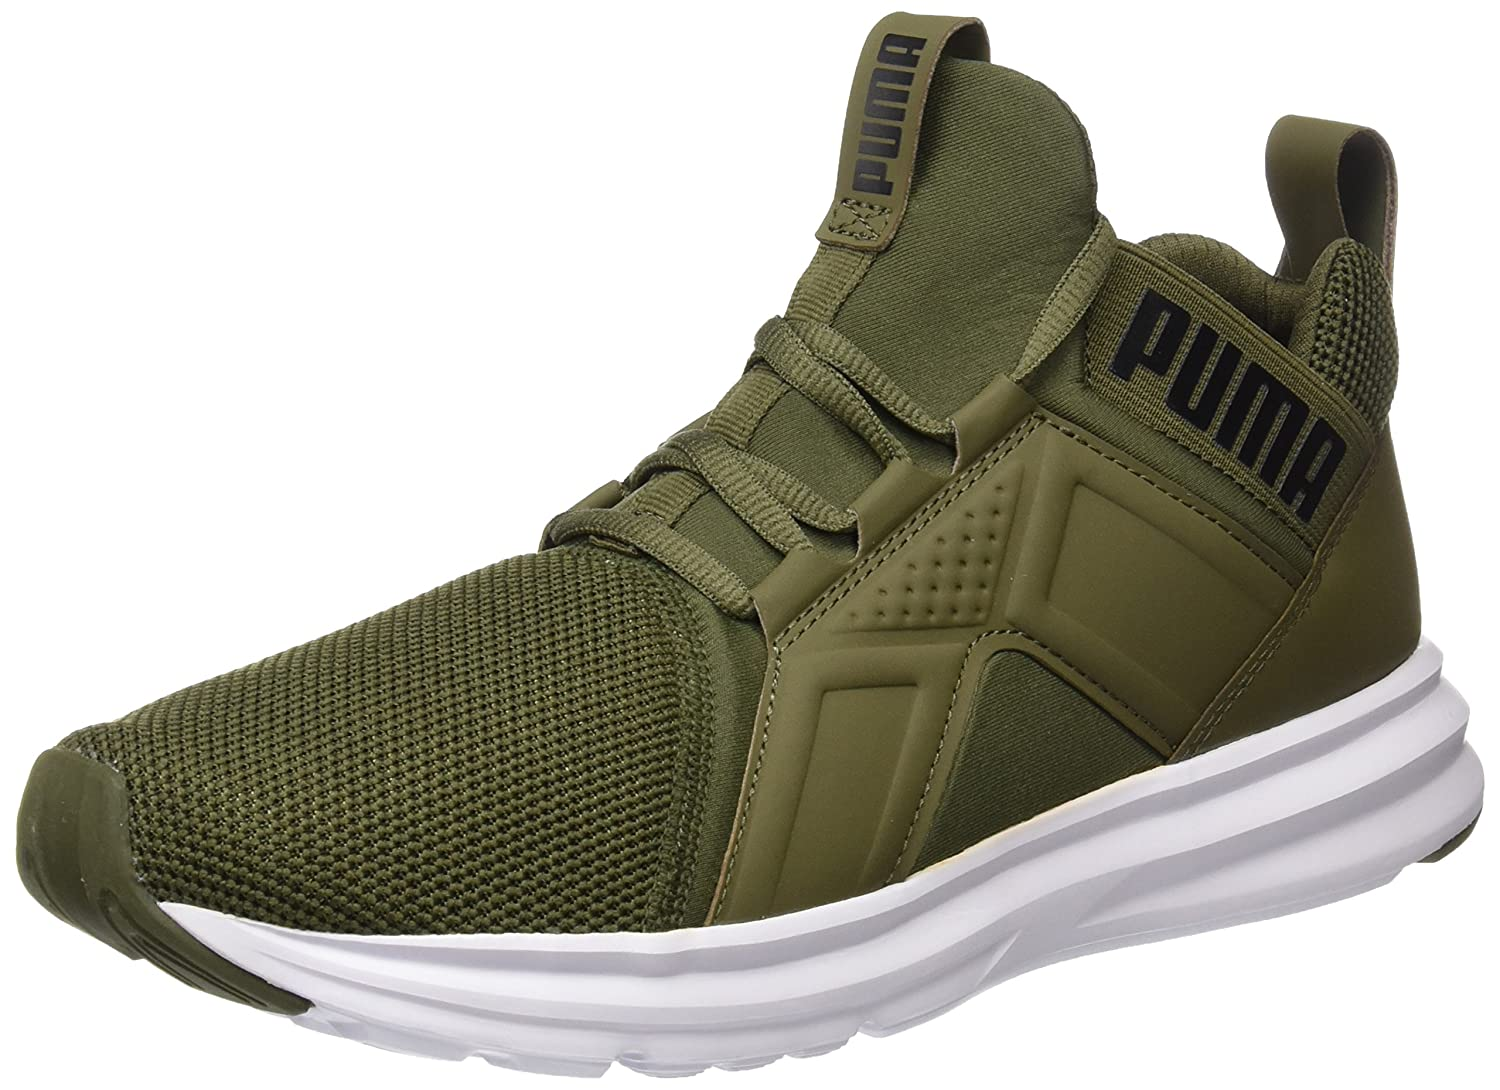 Puma Enzo Mesh best branded Running Shoes for men in India 2019